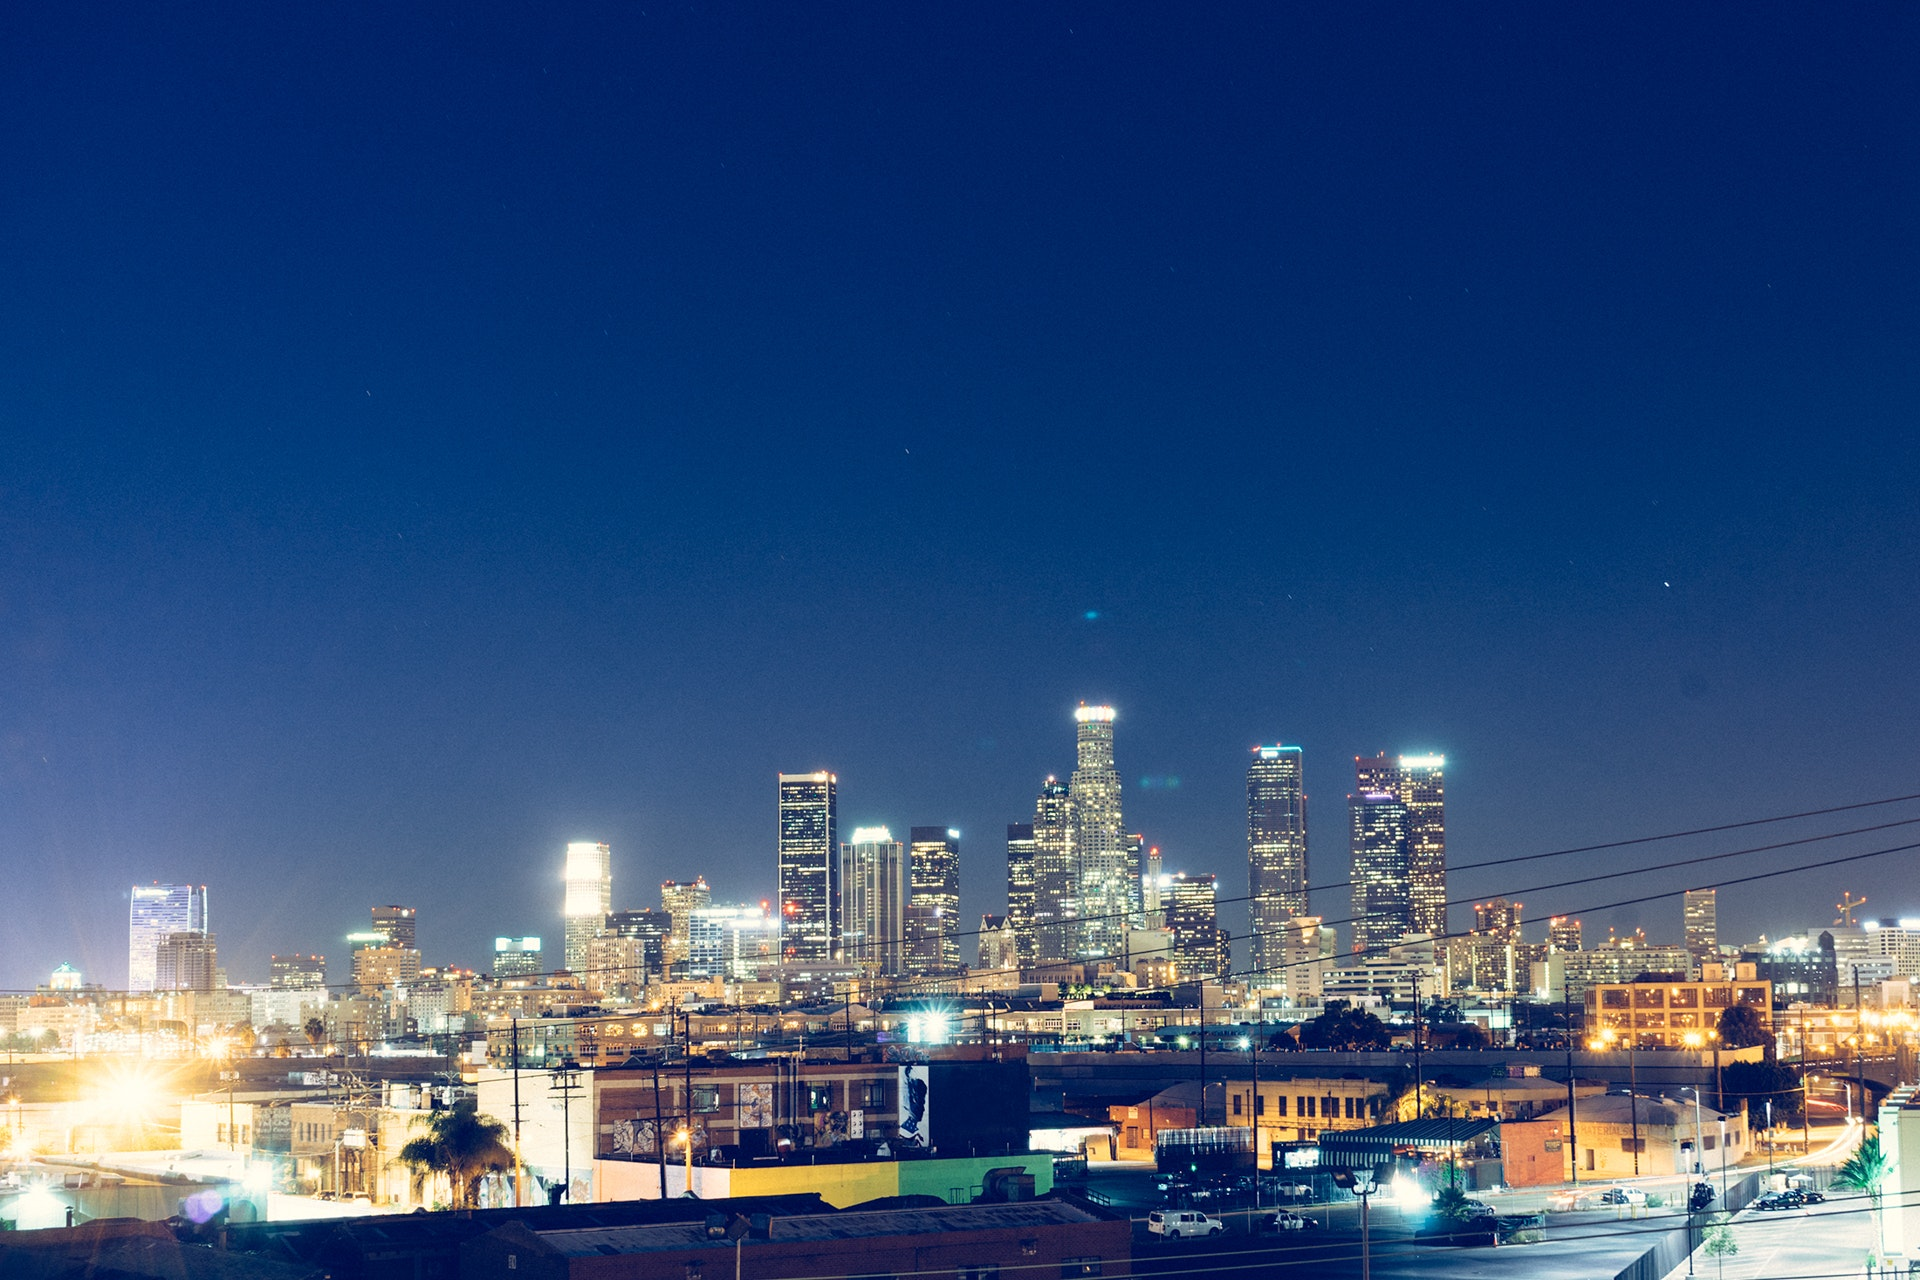 City Buildings During Nighttime Free Stock Photo